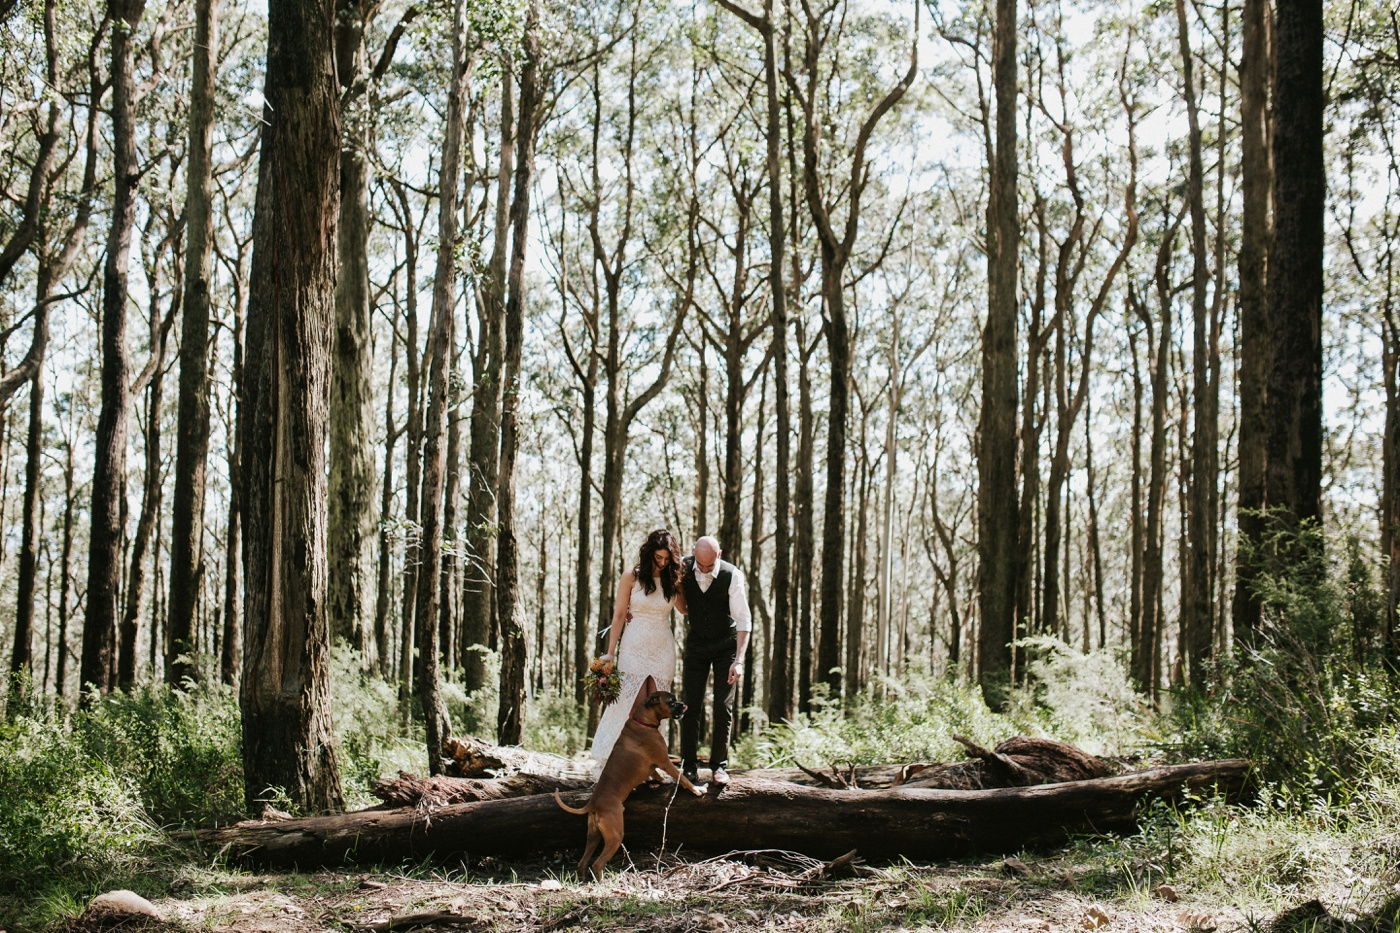 monicajames_dandenongs-dog-fun-relaxed-engagement-shoot_melbourne-fun-candid-wedding-photography_3